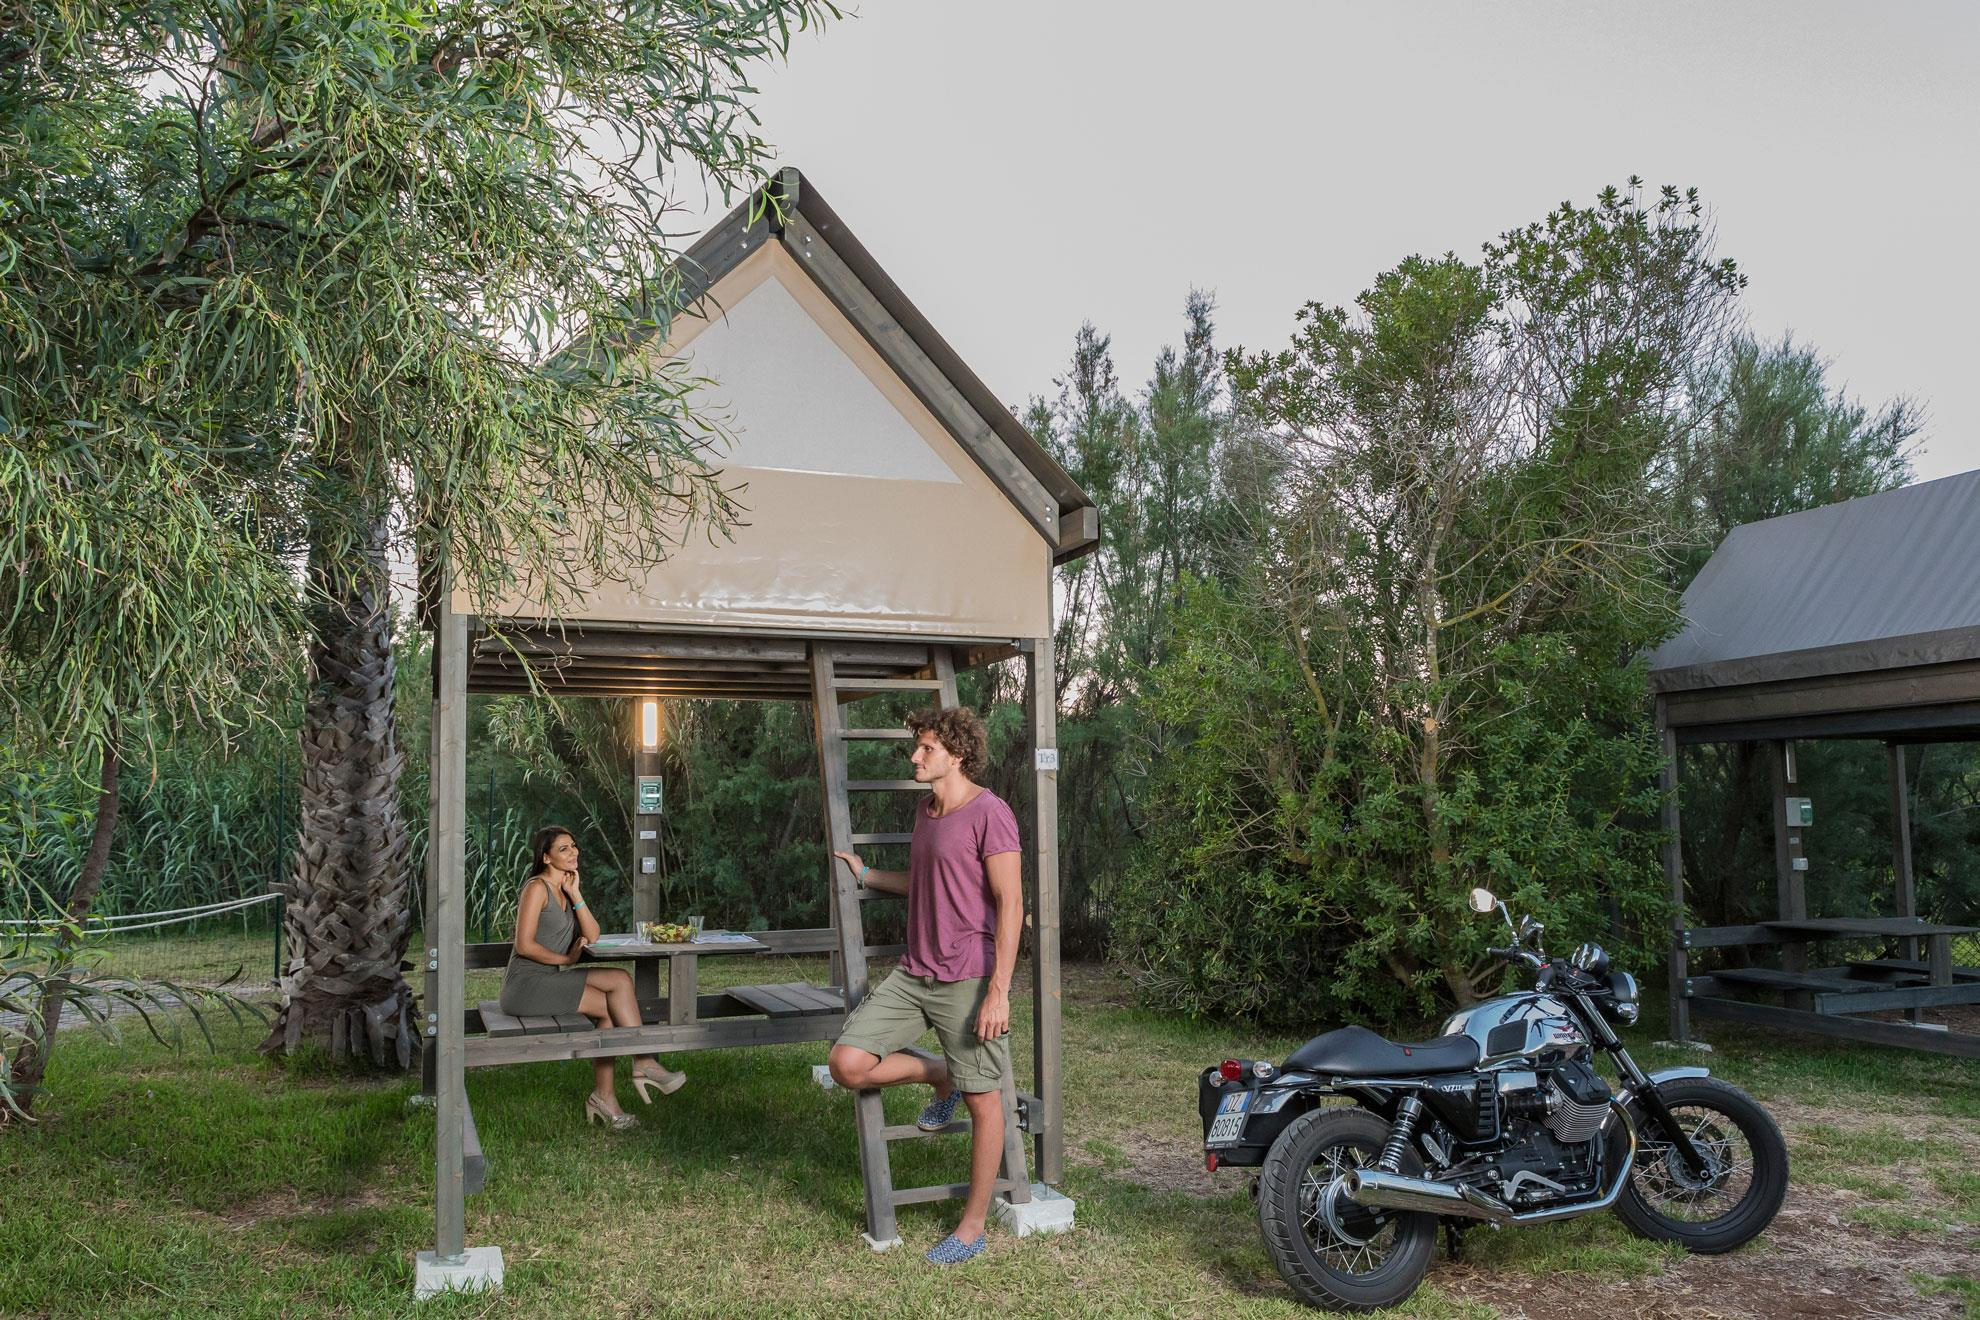 Accommodation - Tent Glamour Rider - Torre Rinalda Camping Village